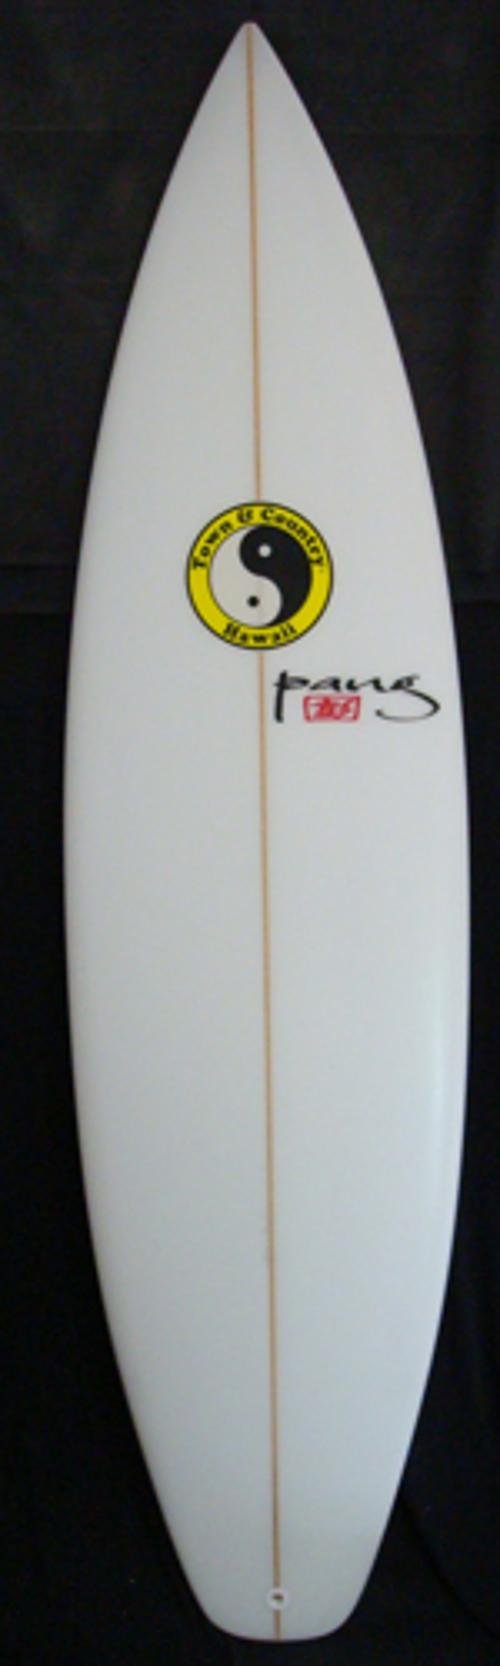 Glenn Pang 6 1 MS1 #13-0746 by Town and Country Surfboards in Transformers: Age of Extinction